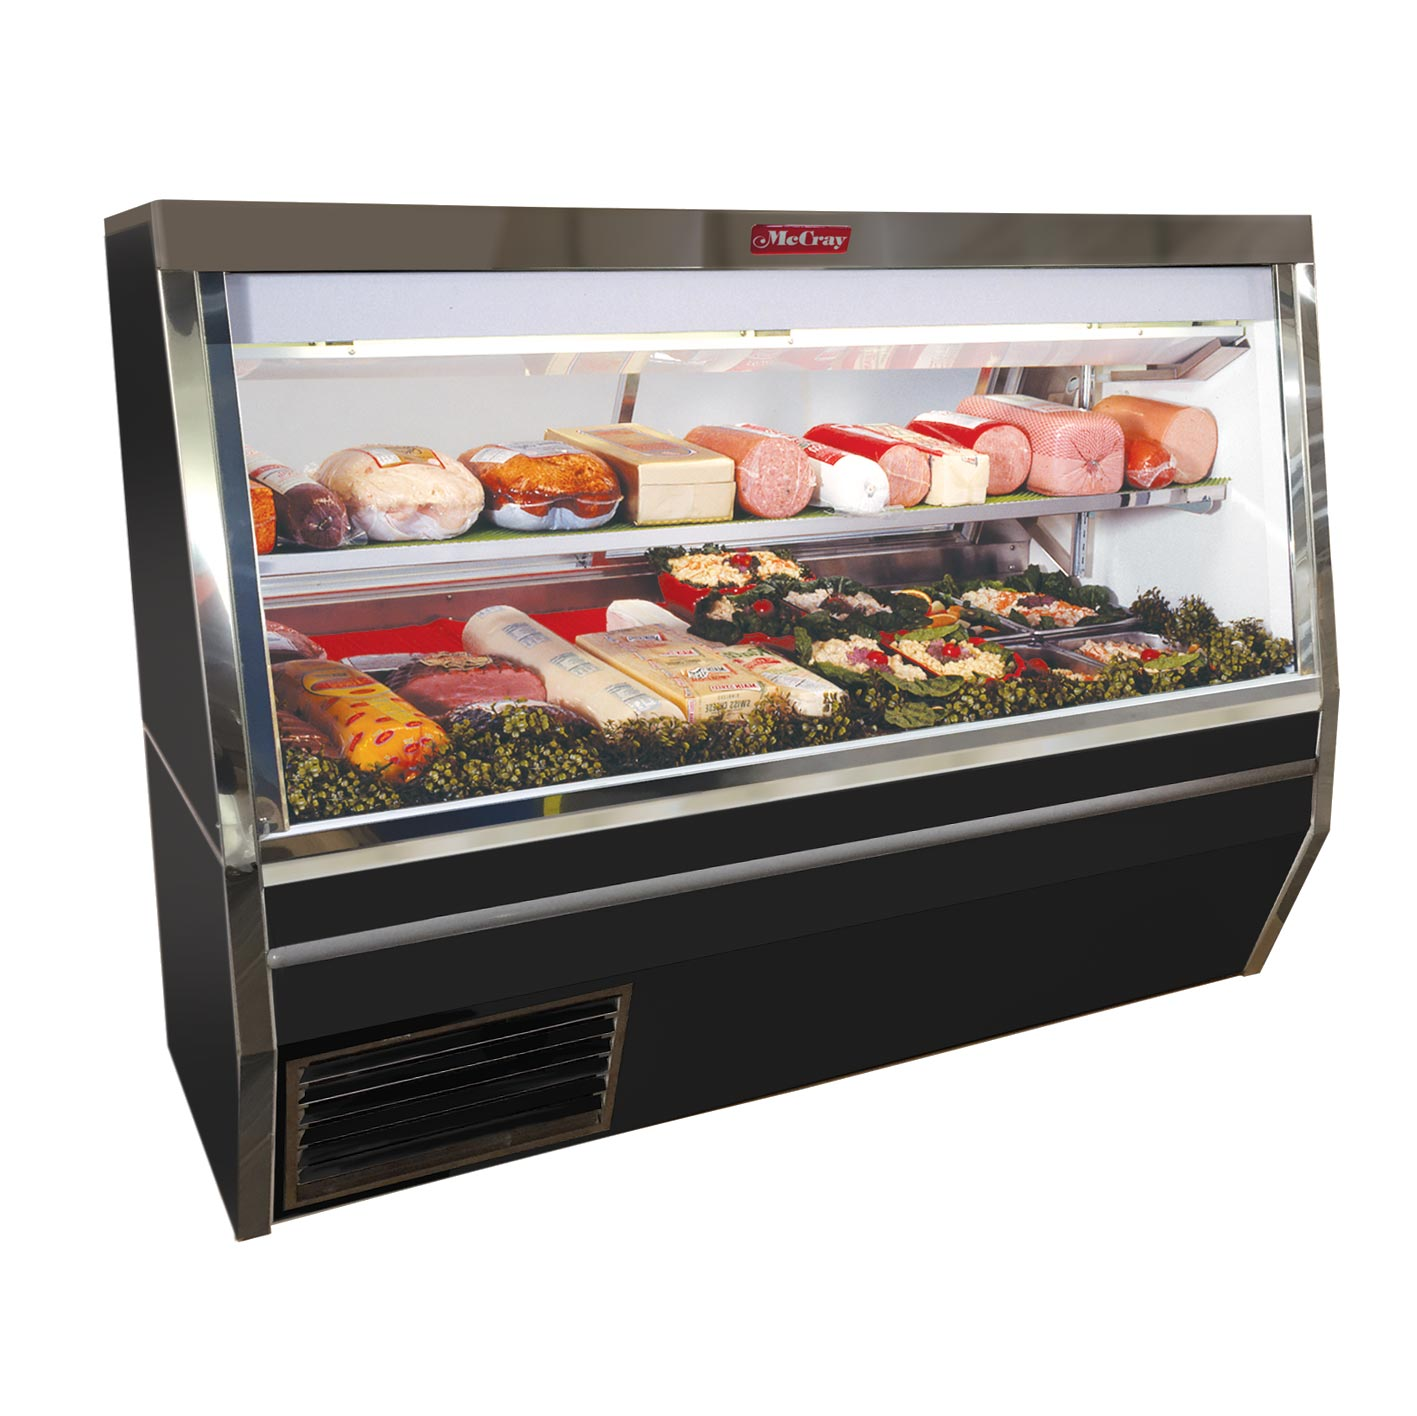 Howard-McCray SC-CDS34N-12-BE-LED display case, refrigerated deli